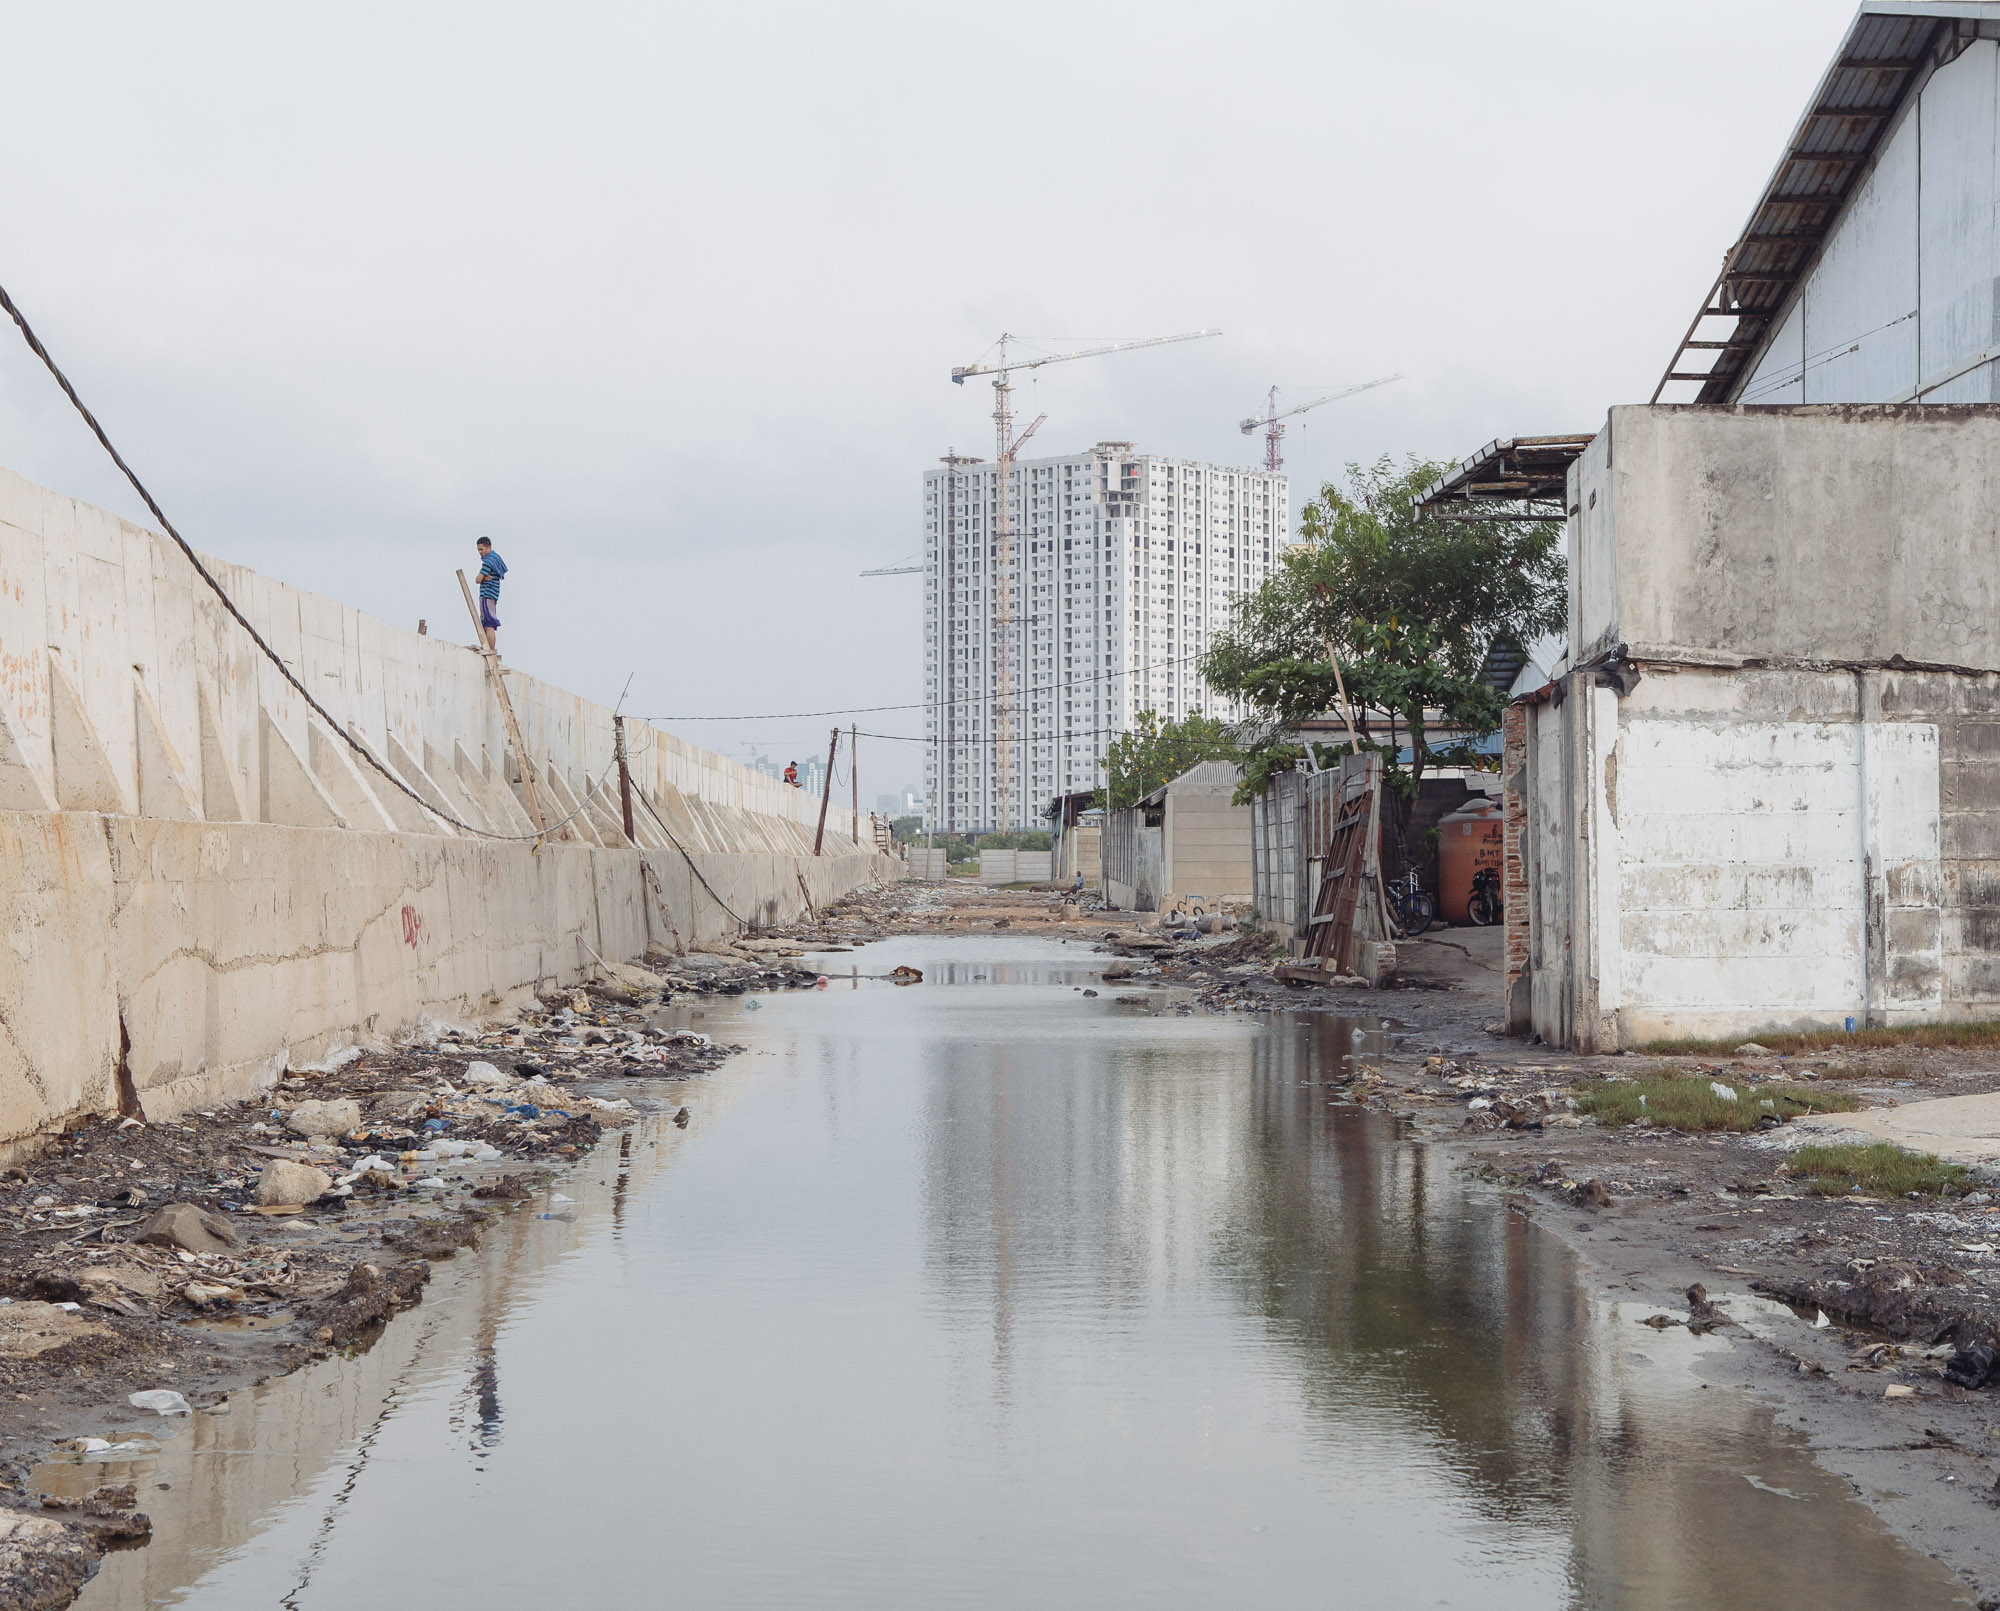 This recently-reinforced section of seawall in Muara Baru, North Jakarta, fails to prevent flooding since seawater still creeps through the soil. This area, once booming with various businesses, is currently abandoned. (Photo by Muhammad Fadli/GroundTruth)